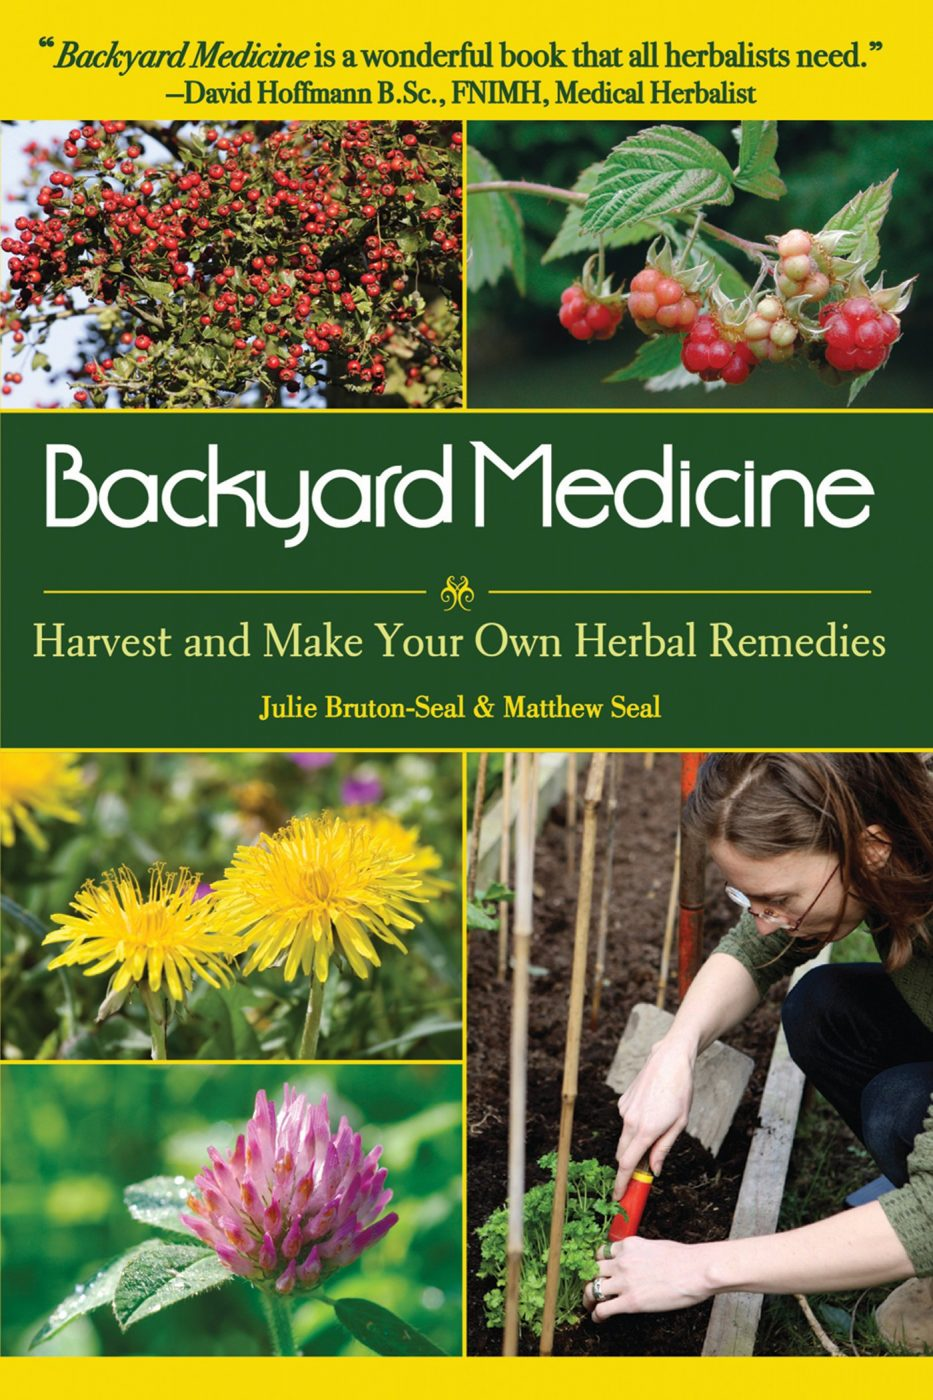 Backyard Medicine By Julie Brunton-Seal And Matthew Seal